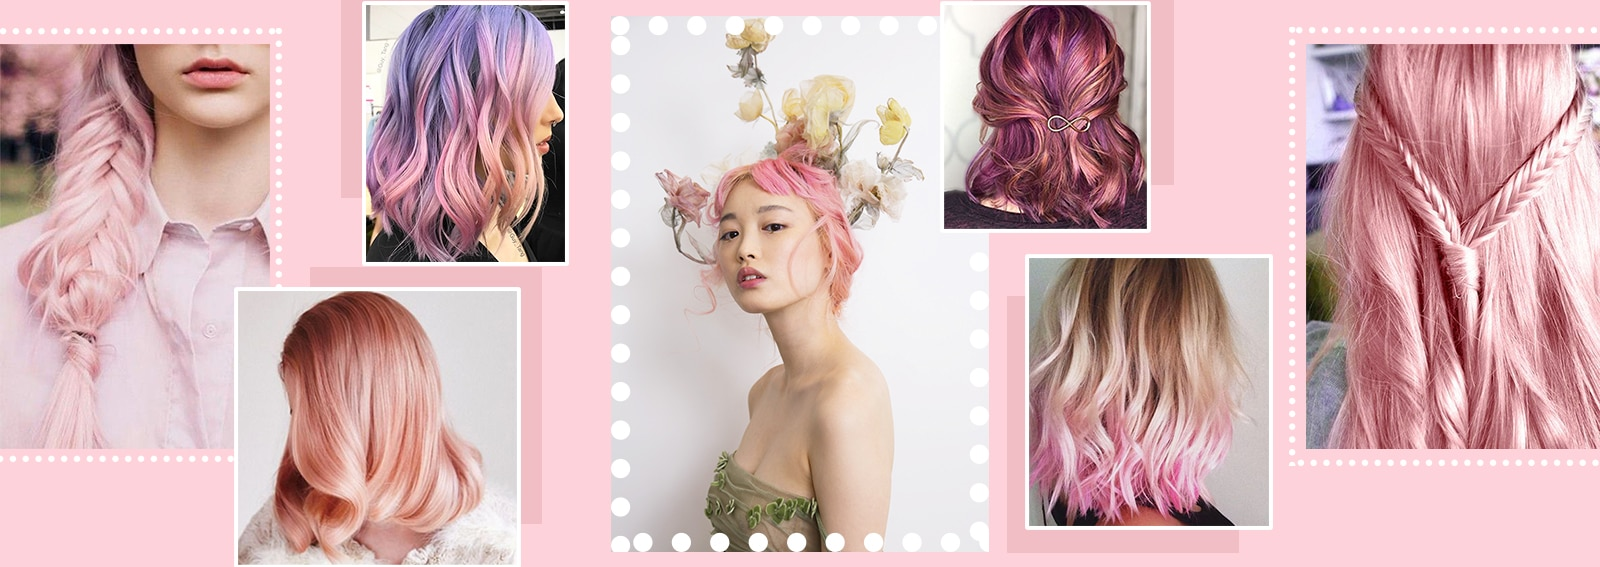 capelli rosa millennial pink collage_desktop